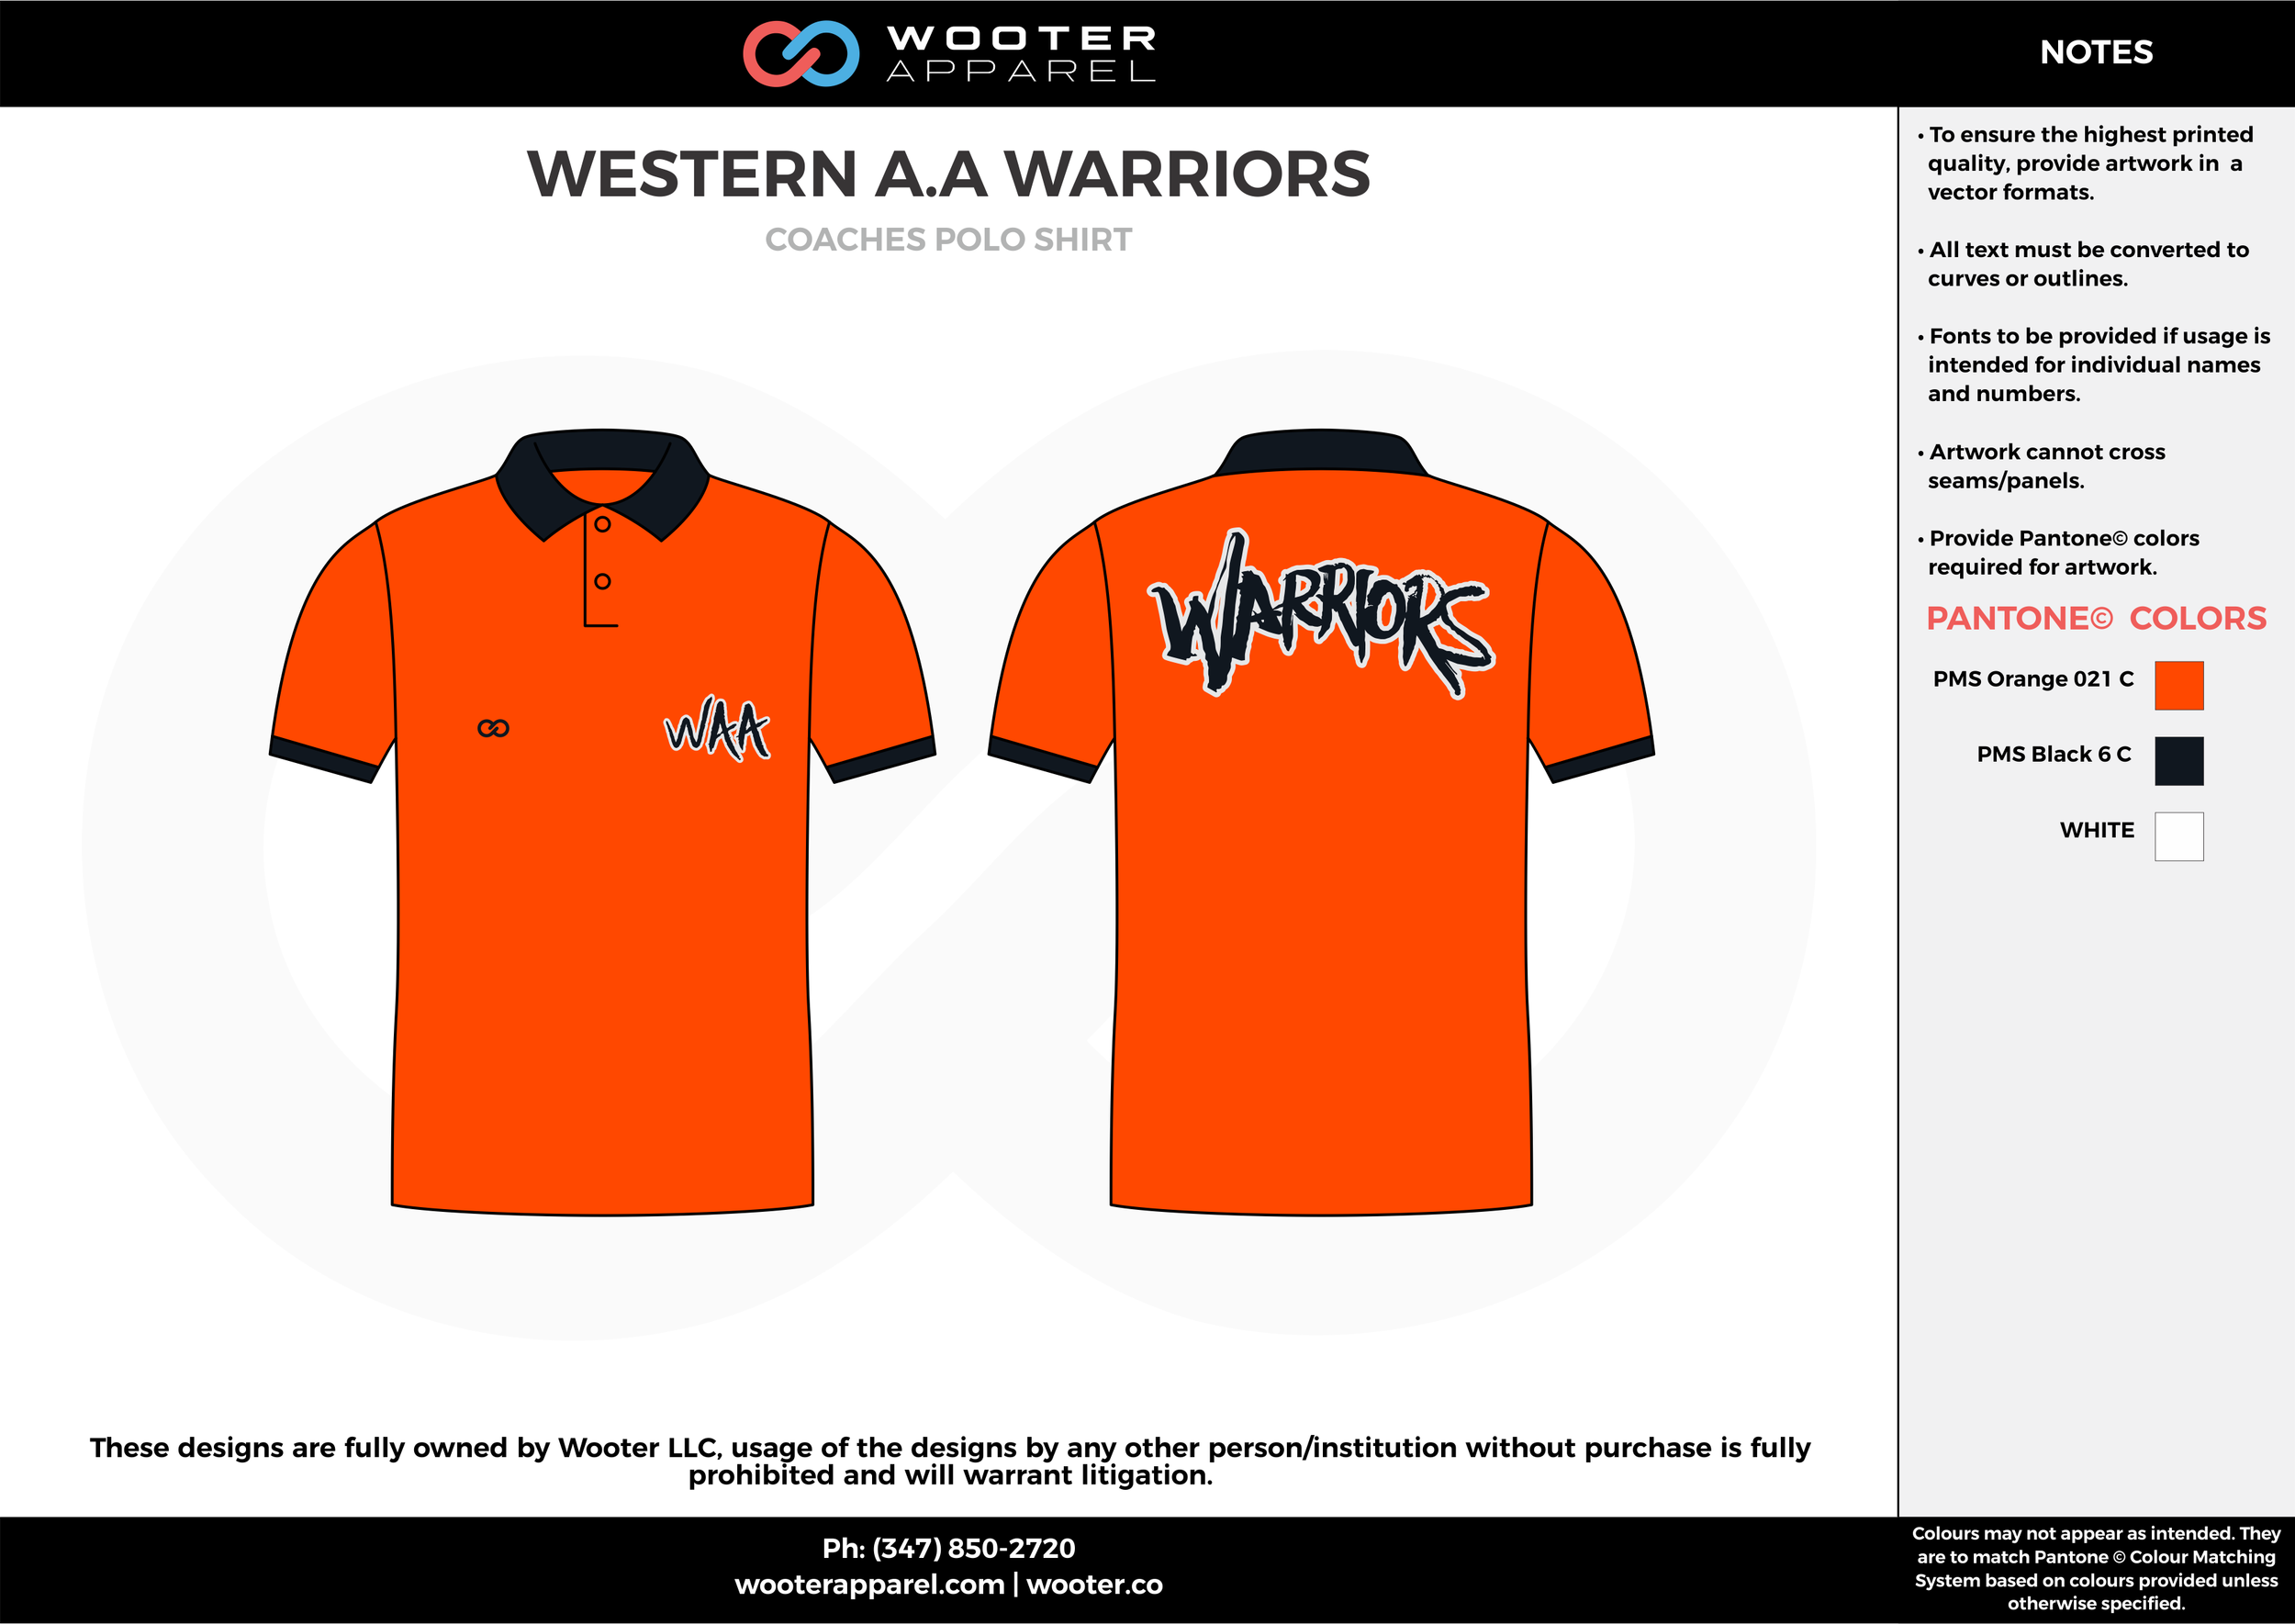 WESTERN A.A WARRIORS ORANGE Black and White Sublimated Polo Shirts